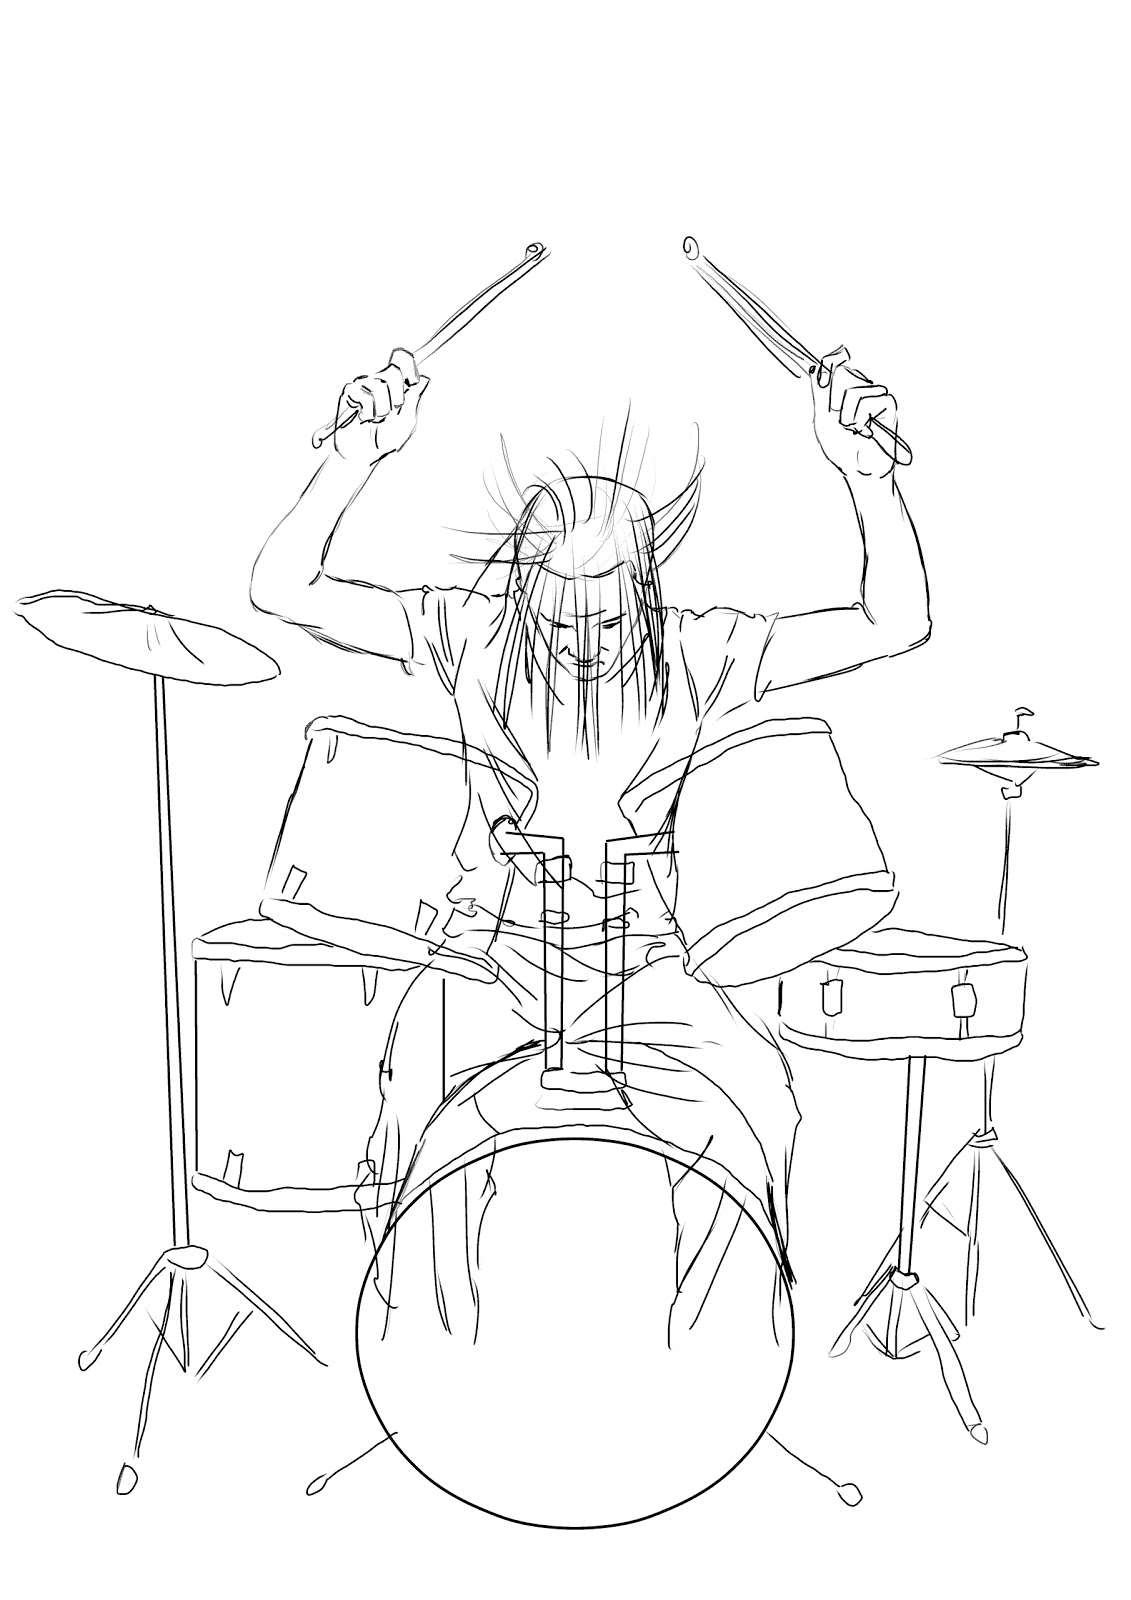 94  simple drums drawing